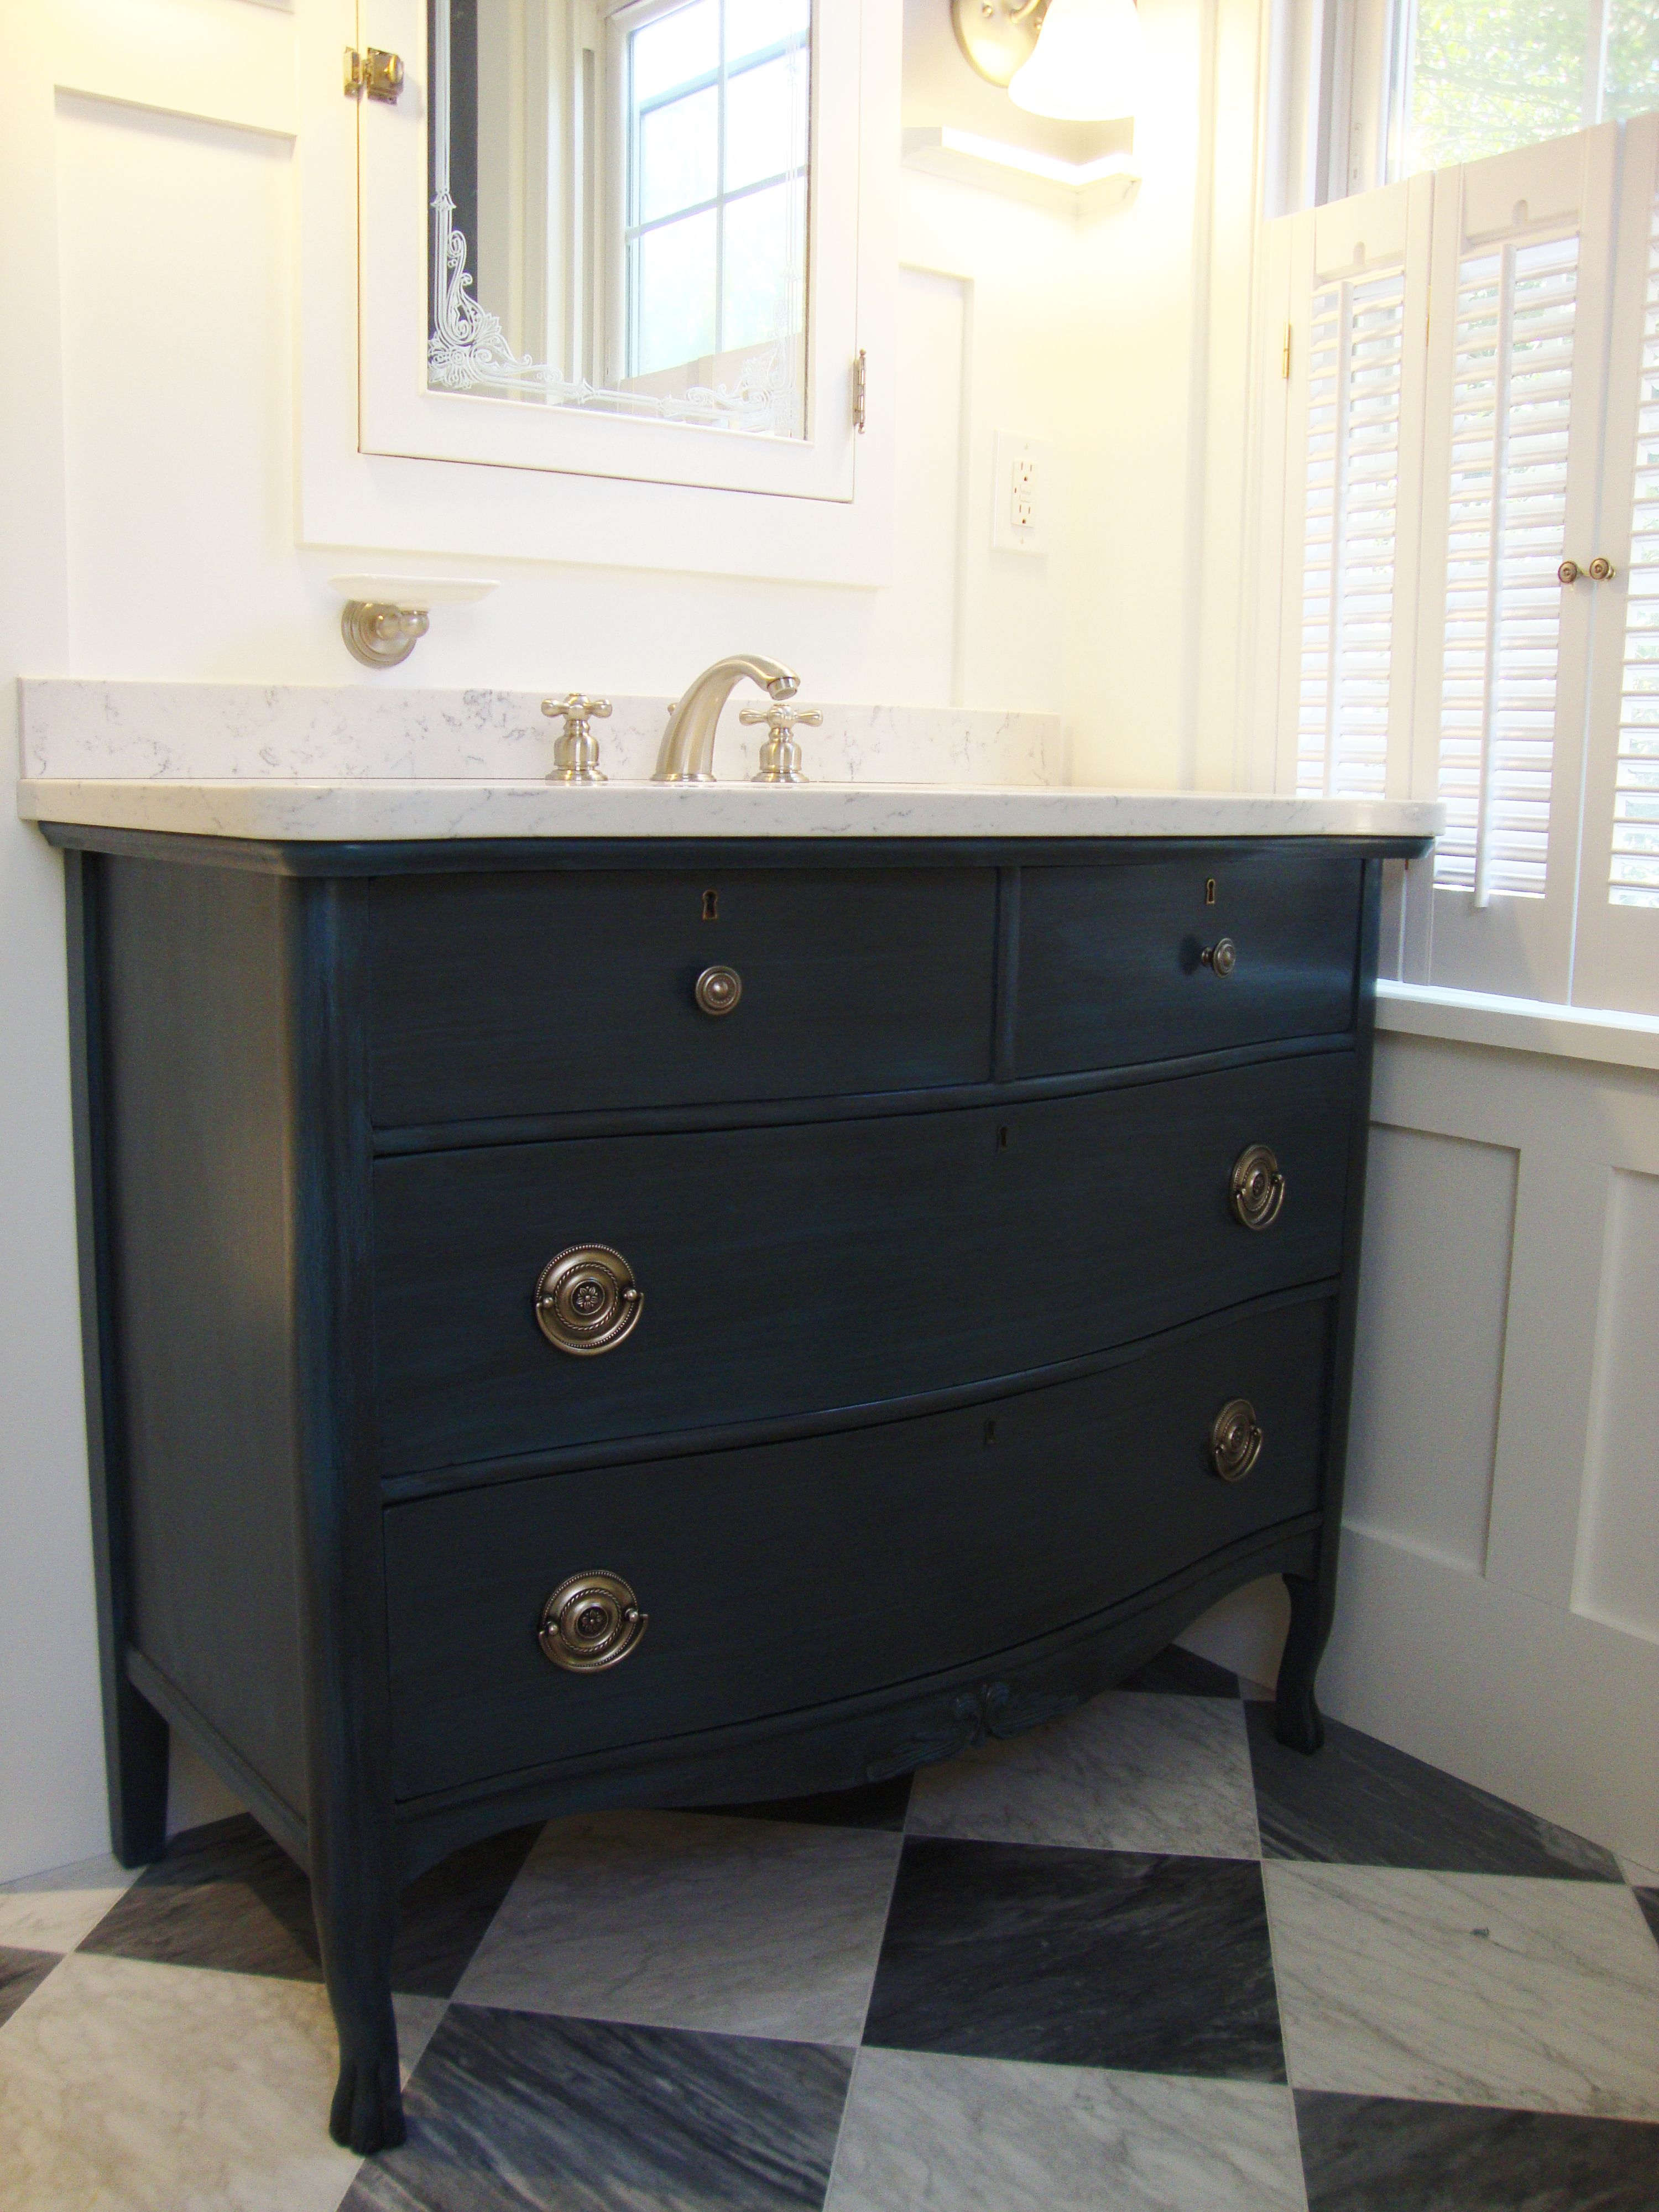 Annie sloan chalk paint bathroom cabinets - Avenue Centrale Vanity Is A Repurposed Antique Serpentine Dresser Refinished In Annie Sloan Chalk Paint Bathroombathroom